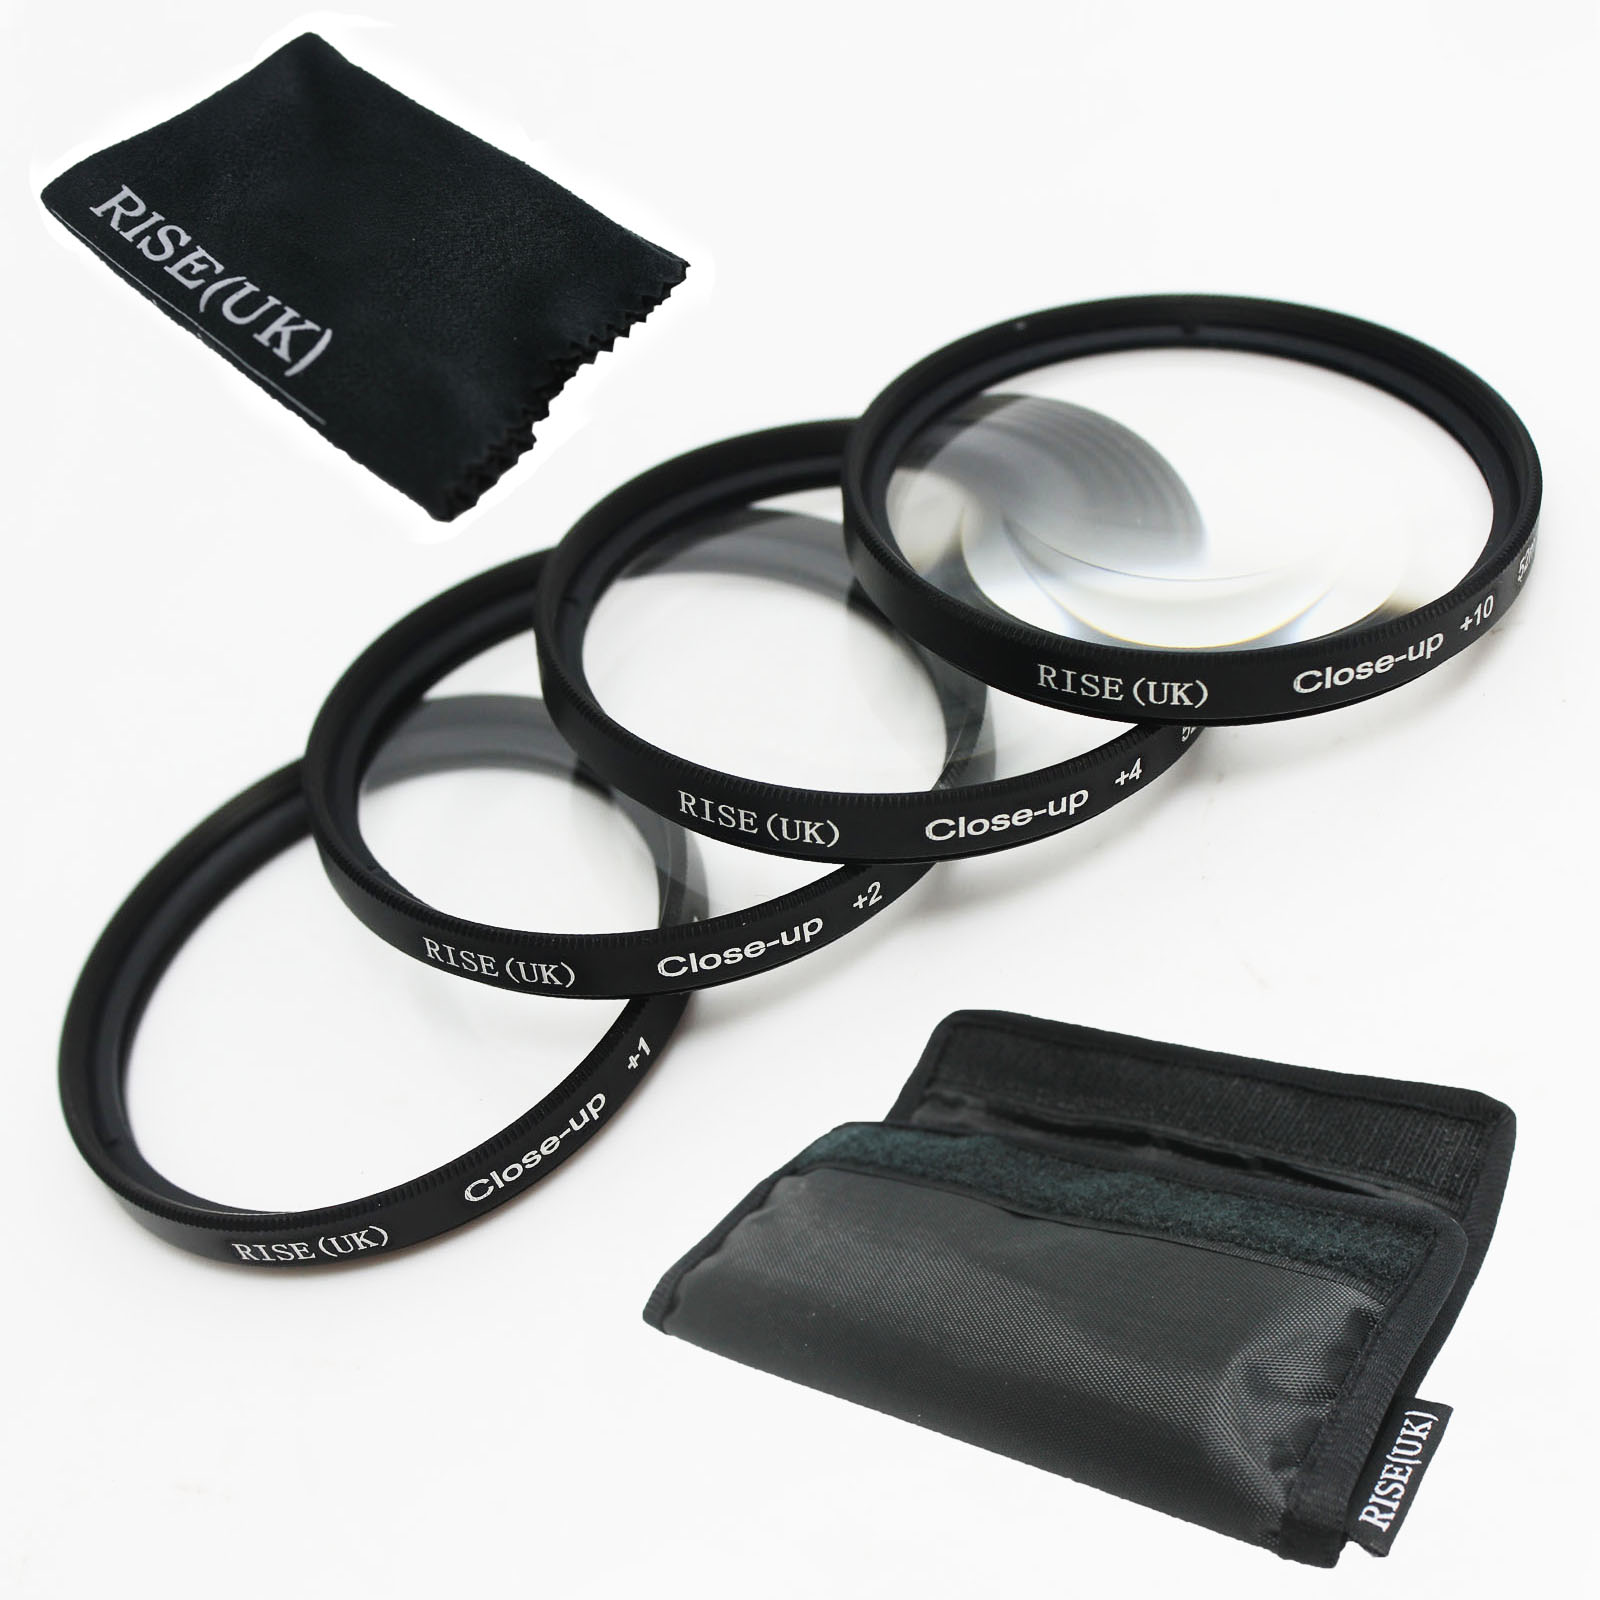 100% GARANTIE 52mm + 1 + 2 + 4 + 10 Close Up LENS Filter kit MACRO Close-Up pour canon nikon sony pentax